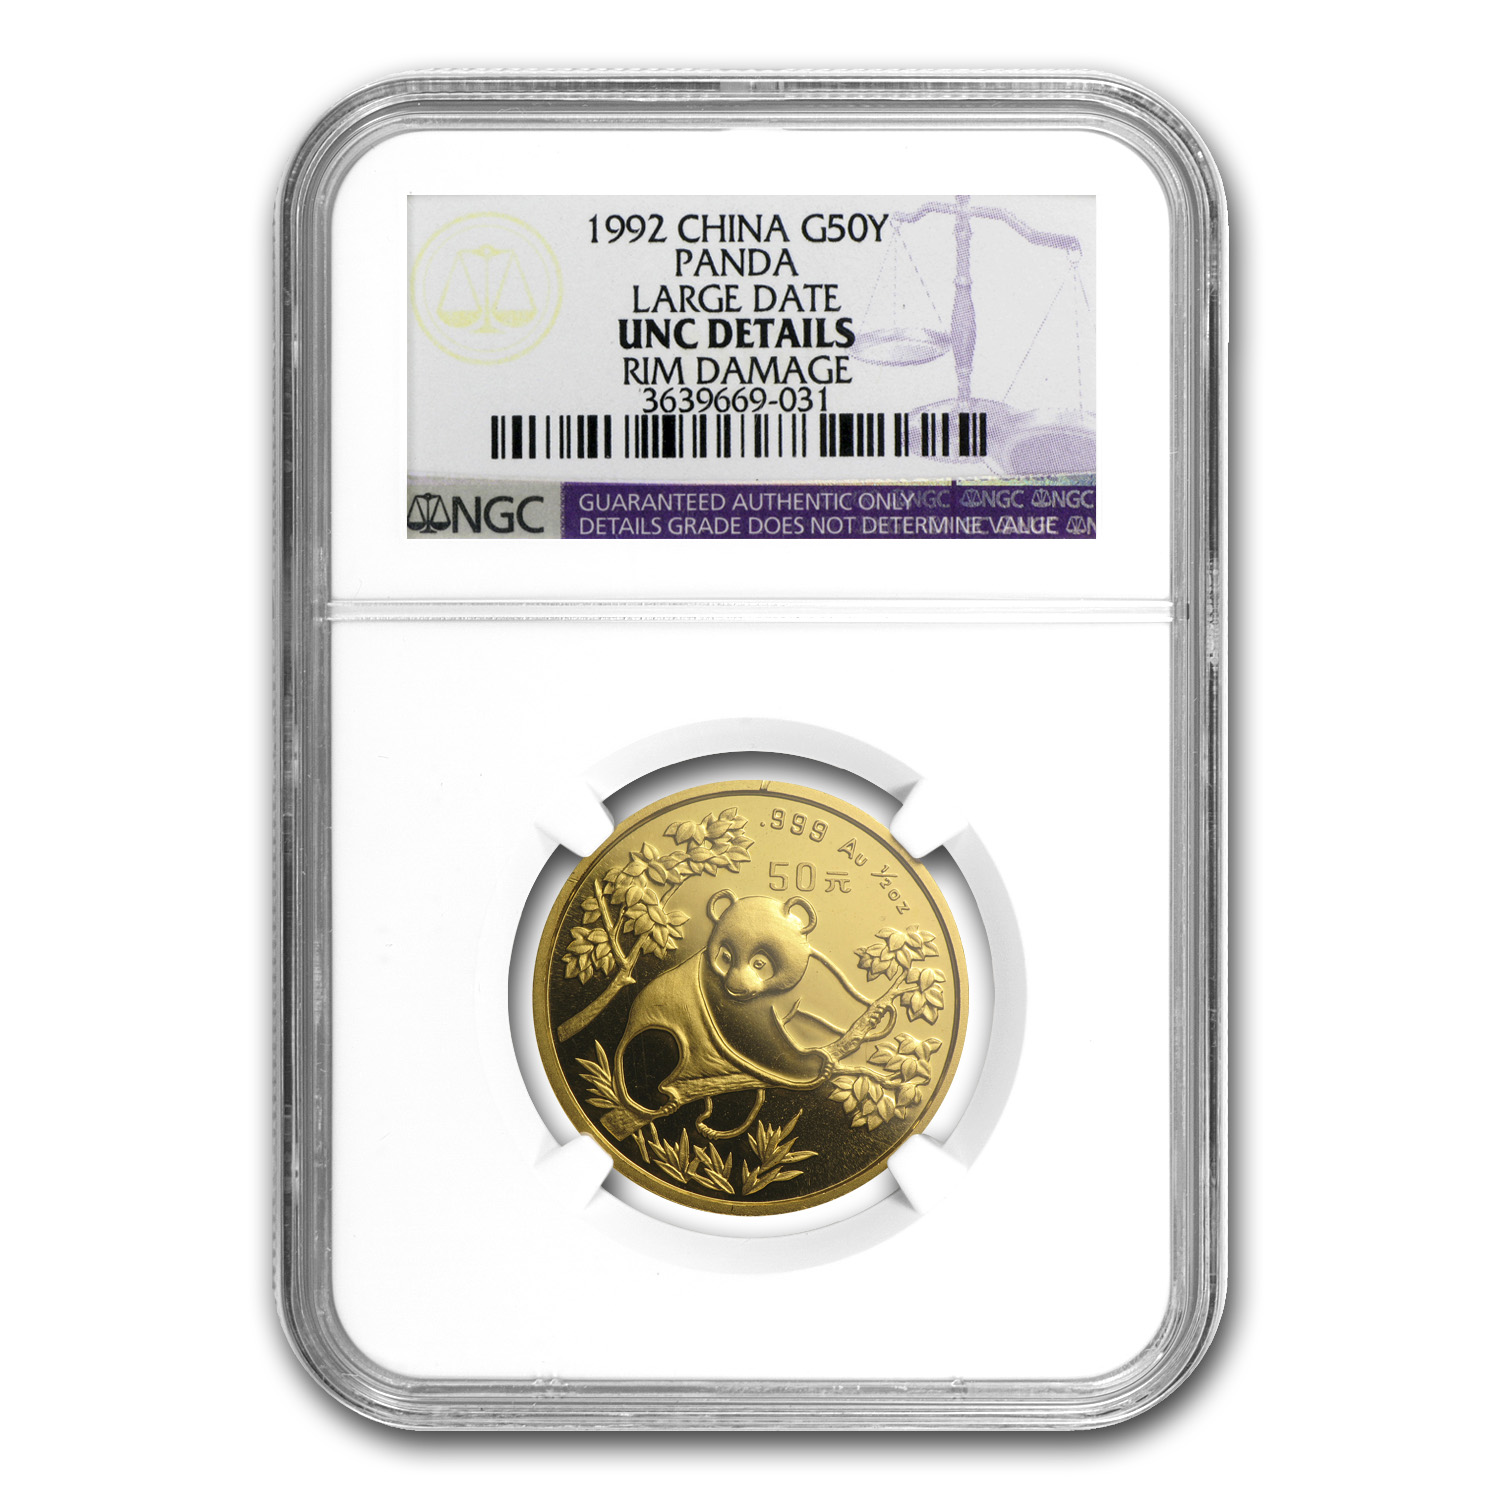 1992 China 1/2 oz Gold Panda Large Date Unc Details NGC